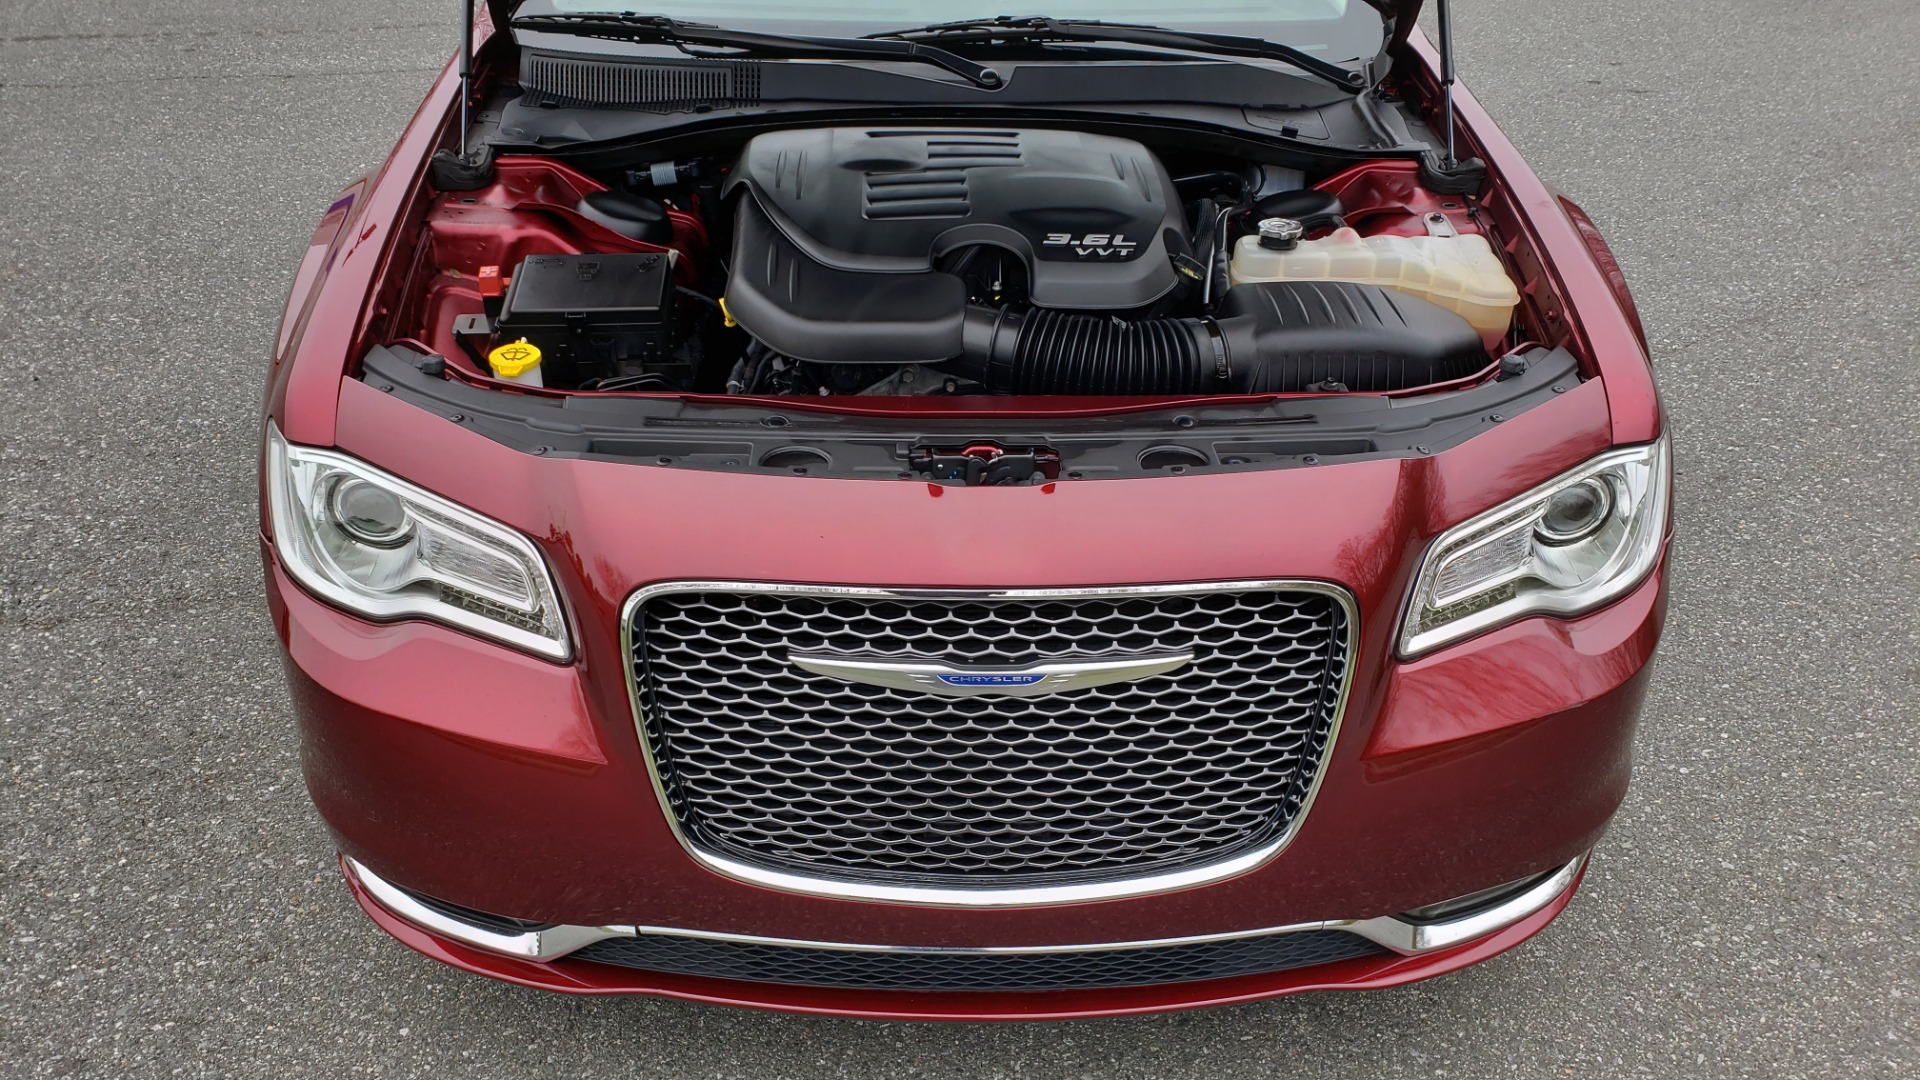 Used 2019 Chrysler 300 LIMITED / 3.6L V6 / 8-SPD AUTO / LEATHER / REARVIEW for sale Sold at Formula Imports in Charlotte NC 28227 16